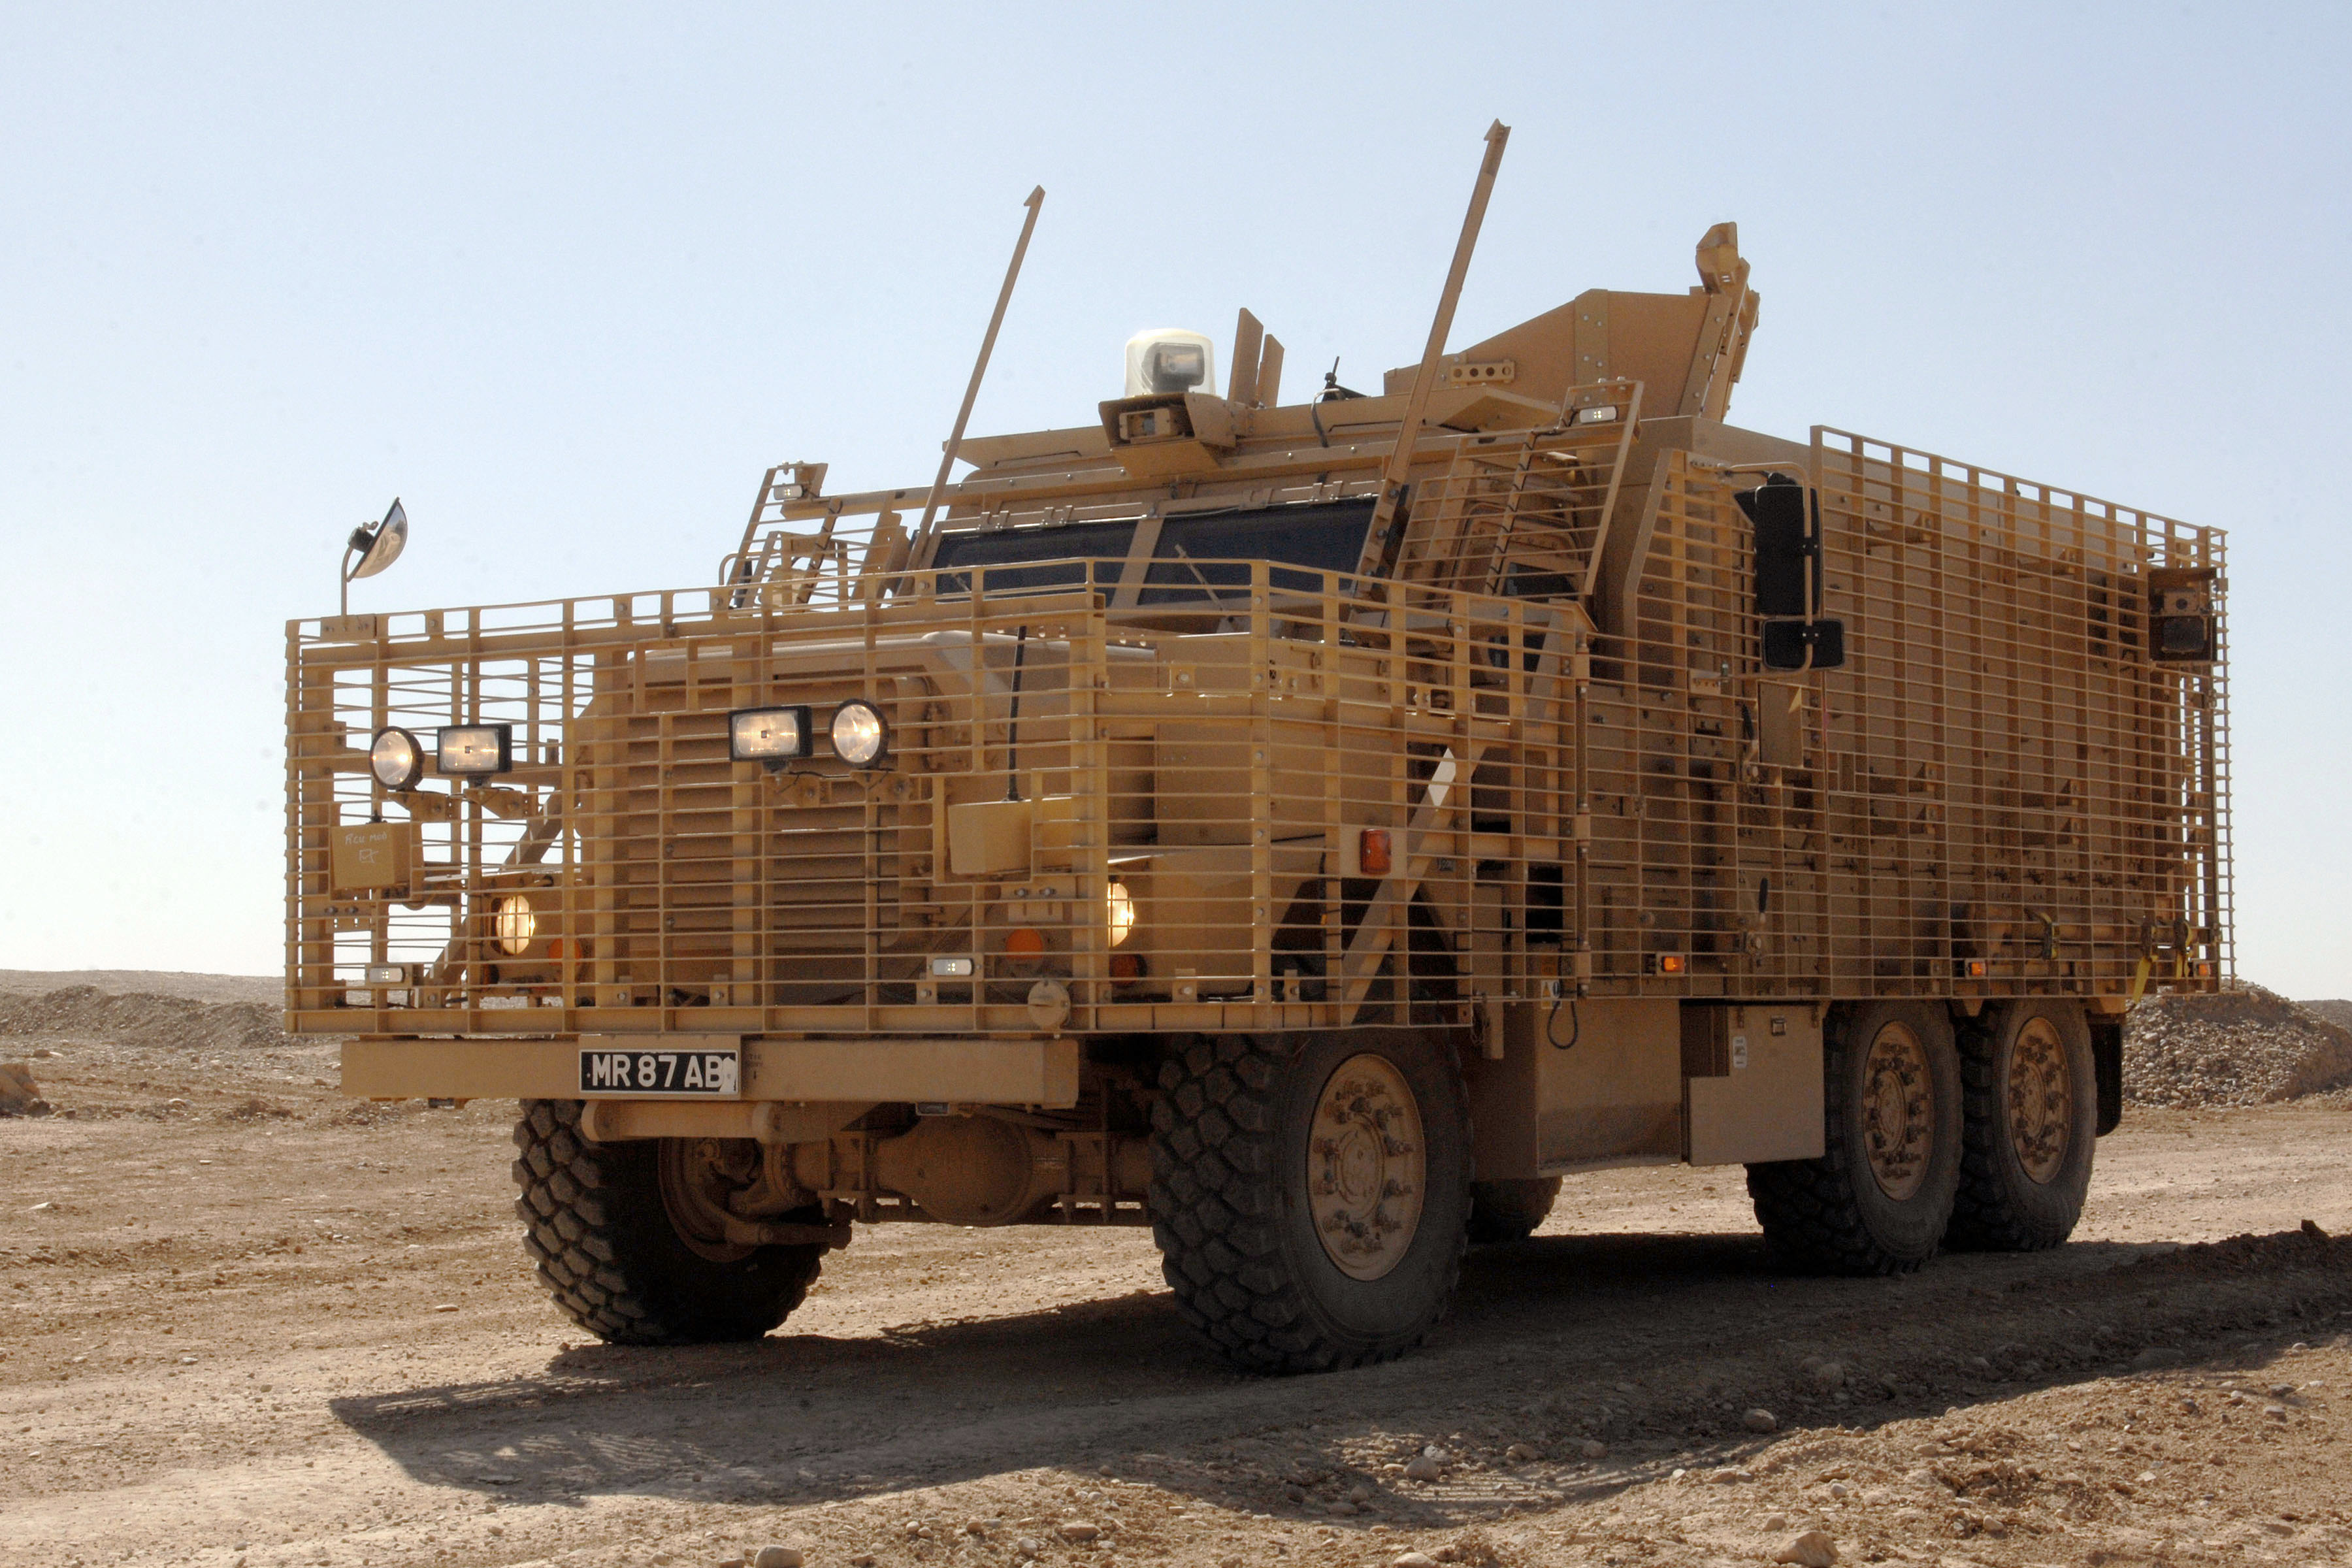 File:Mastiff 2 Armoured Vehicle Leads the Convoy at the Defence ...